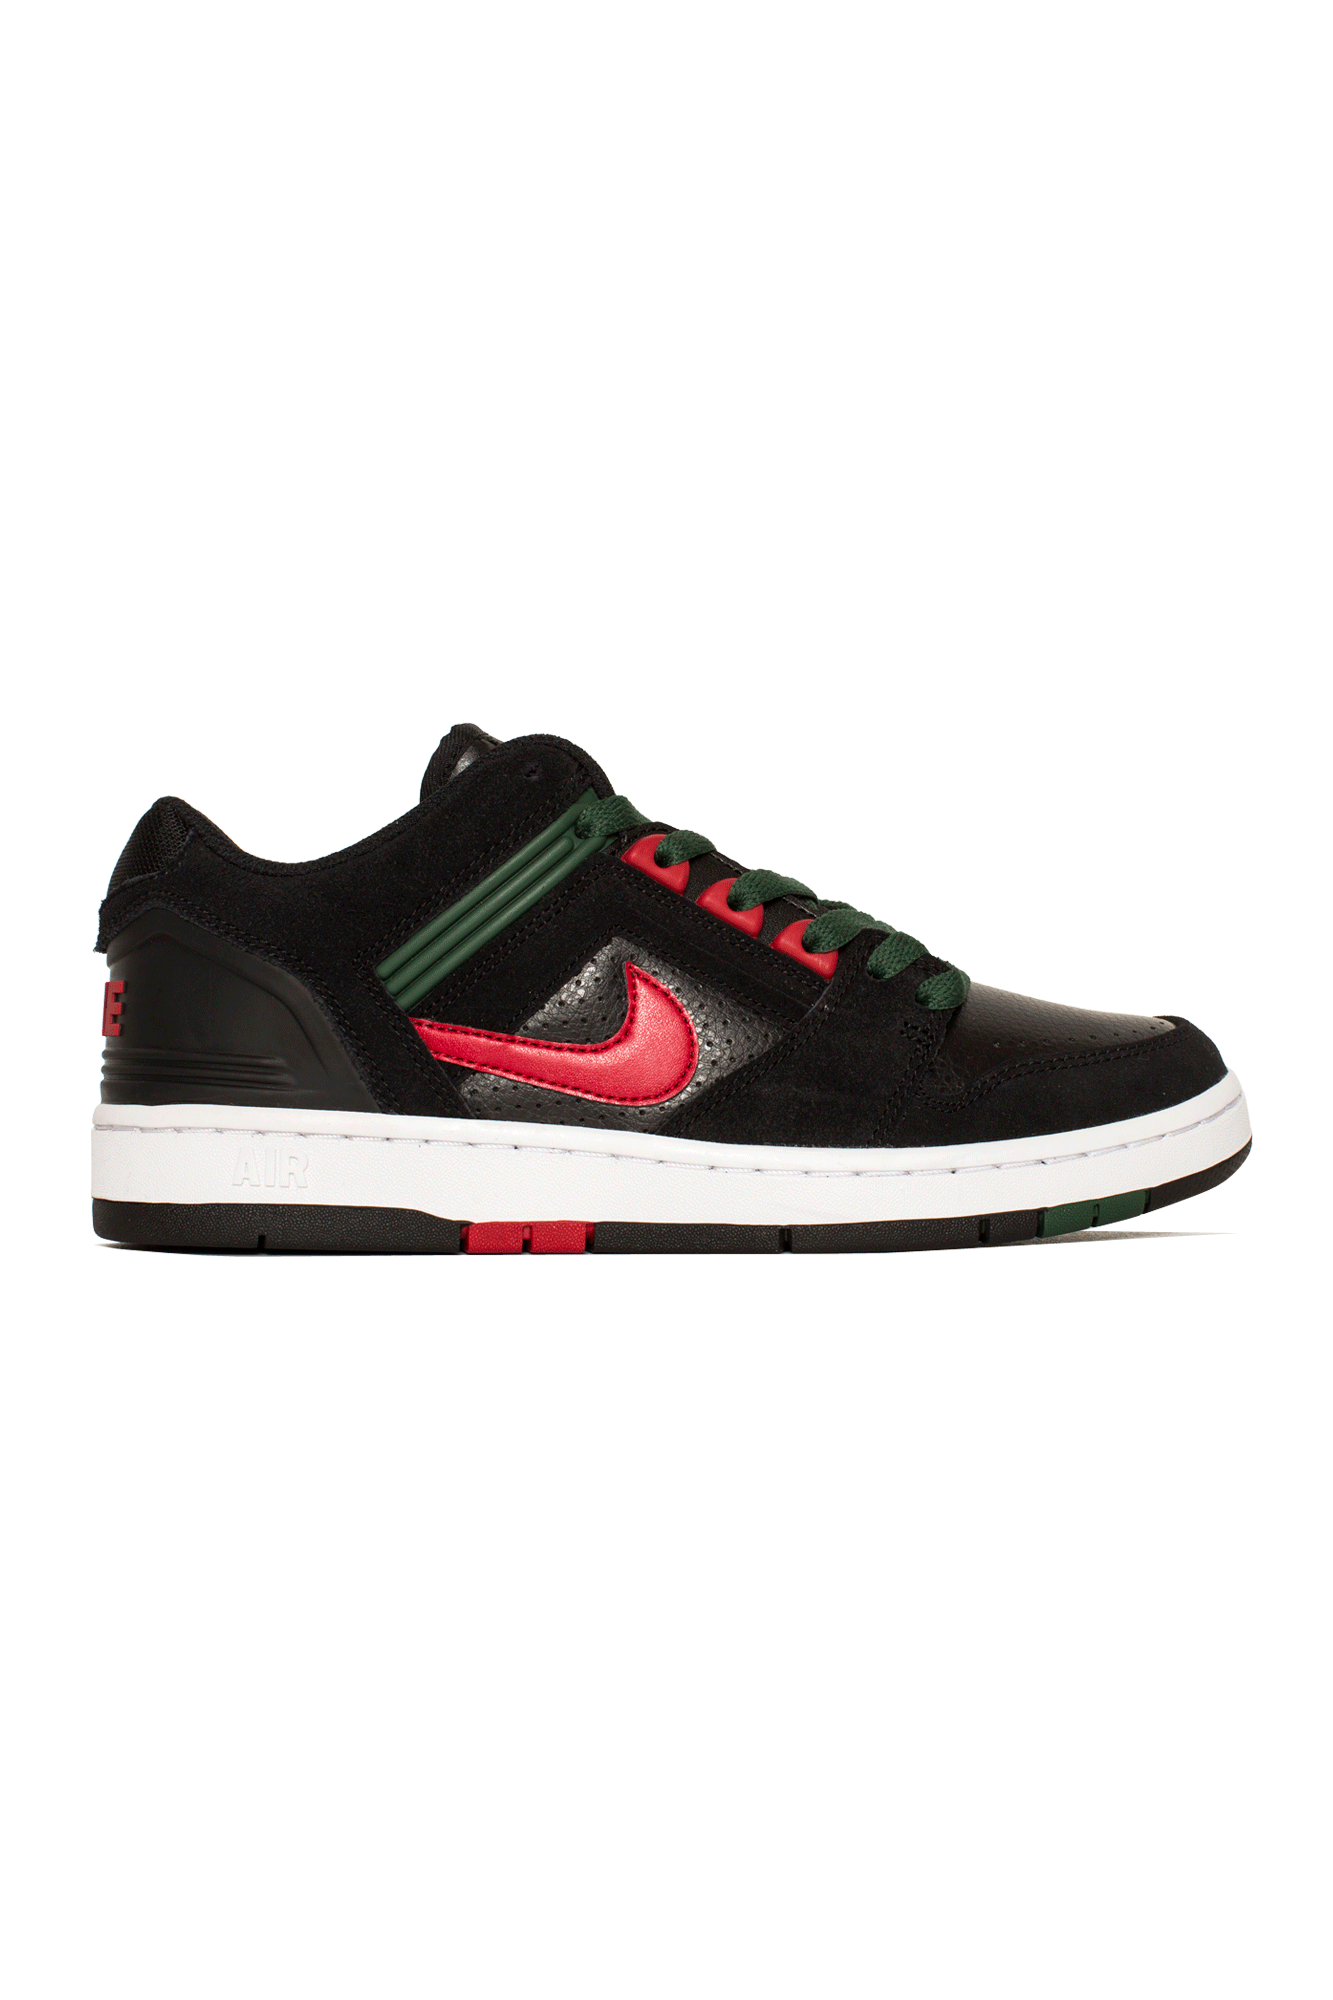 SB Air Force II Low Nero